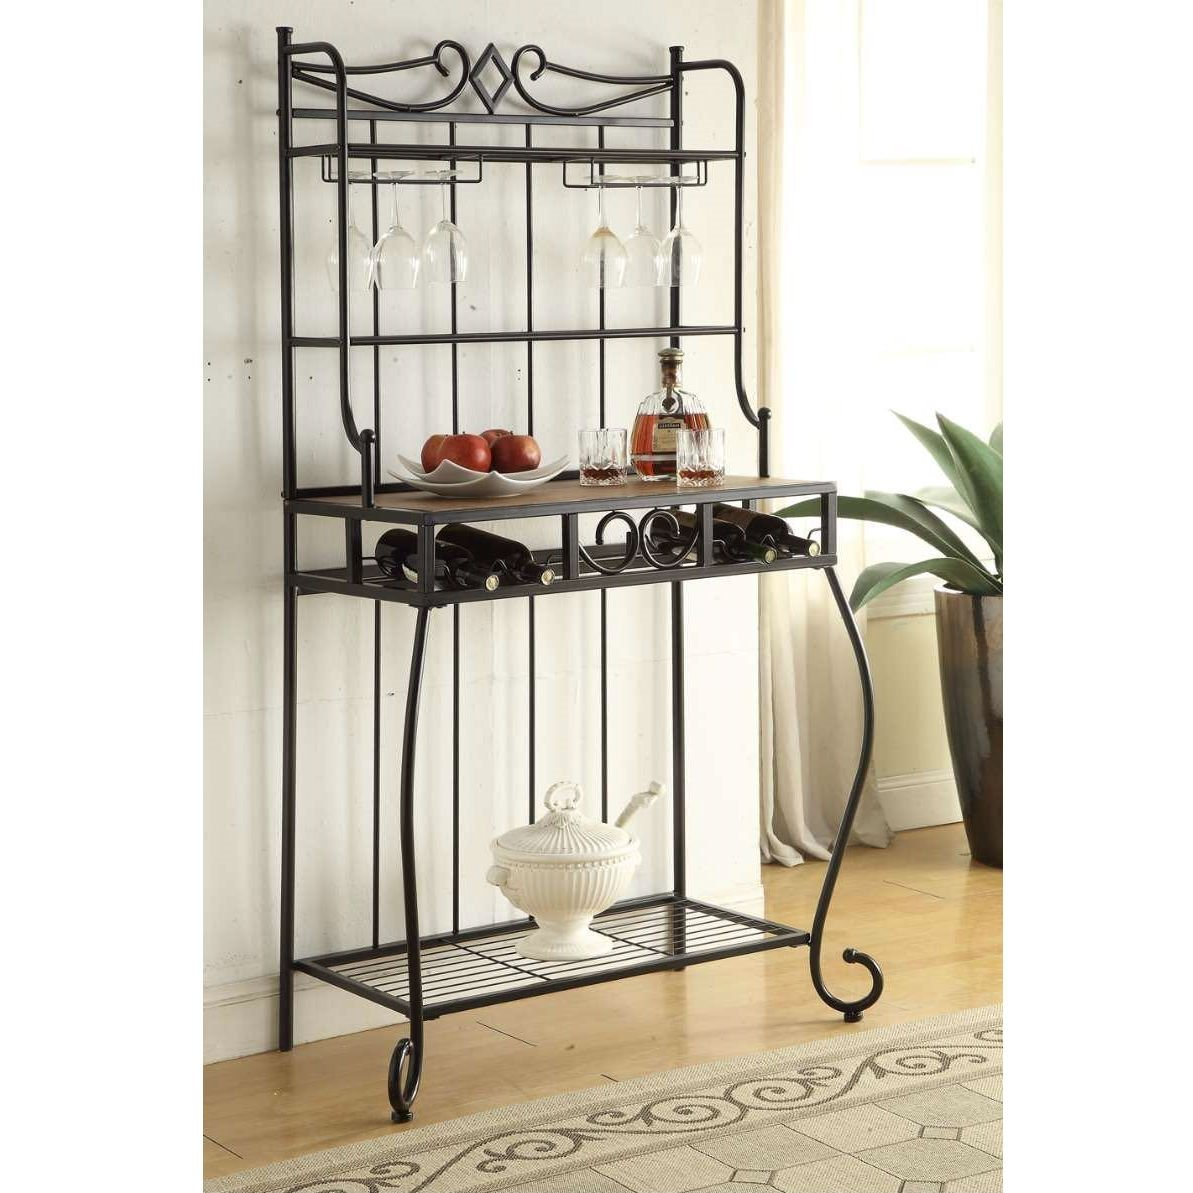 slate indoor in kitchen panacea bakers corner outdoor rack display rustic black rectangular plant stand products